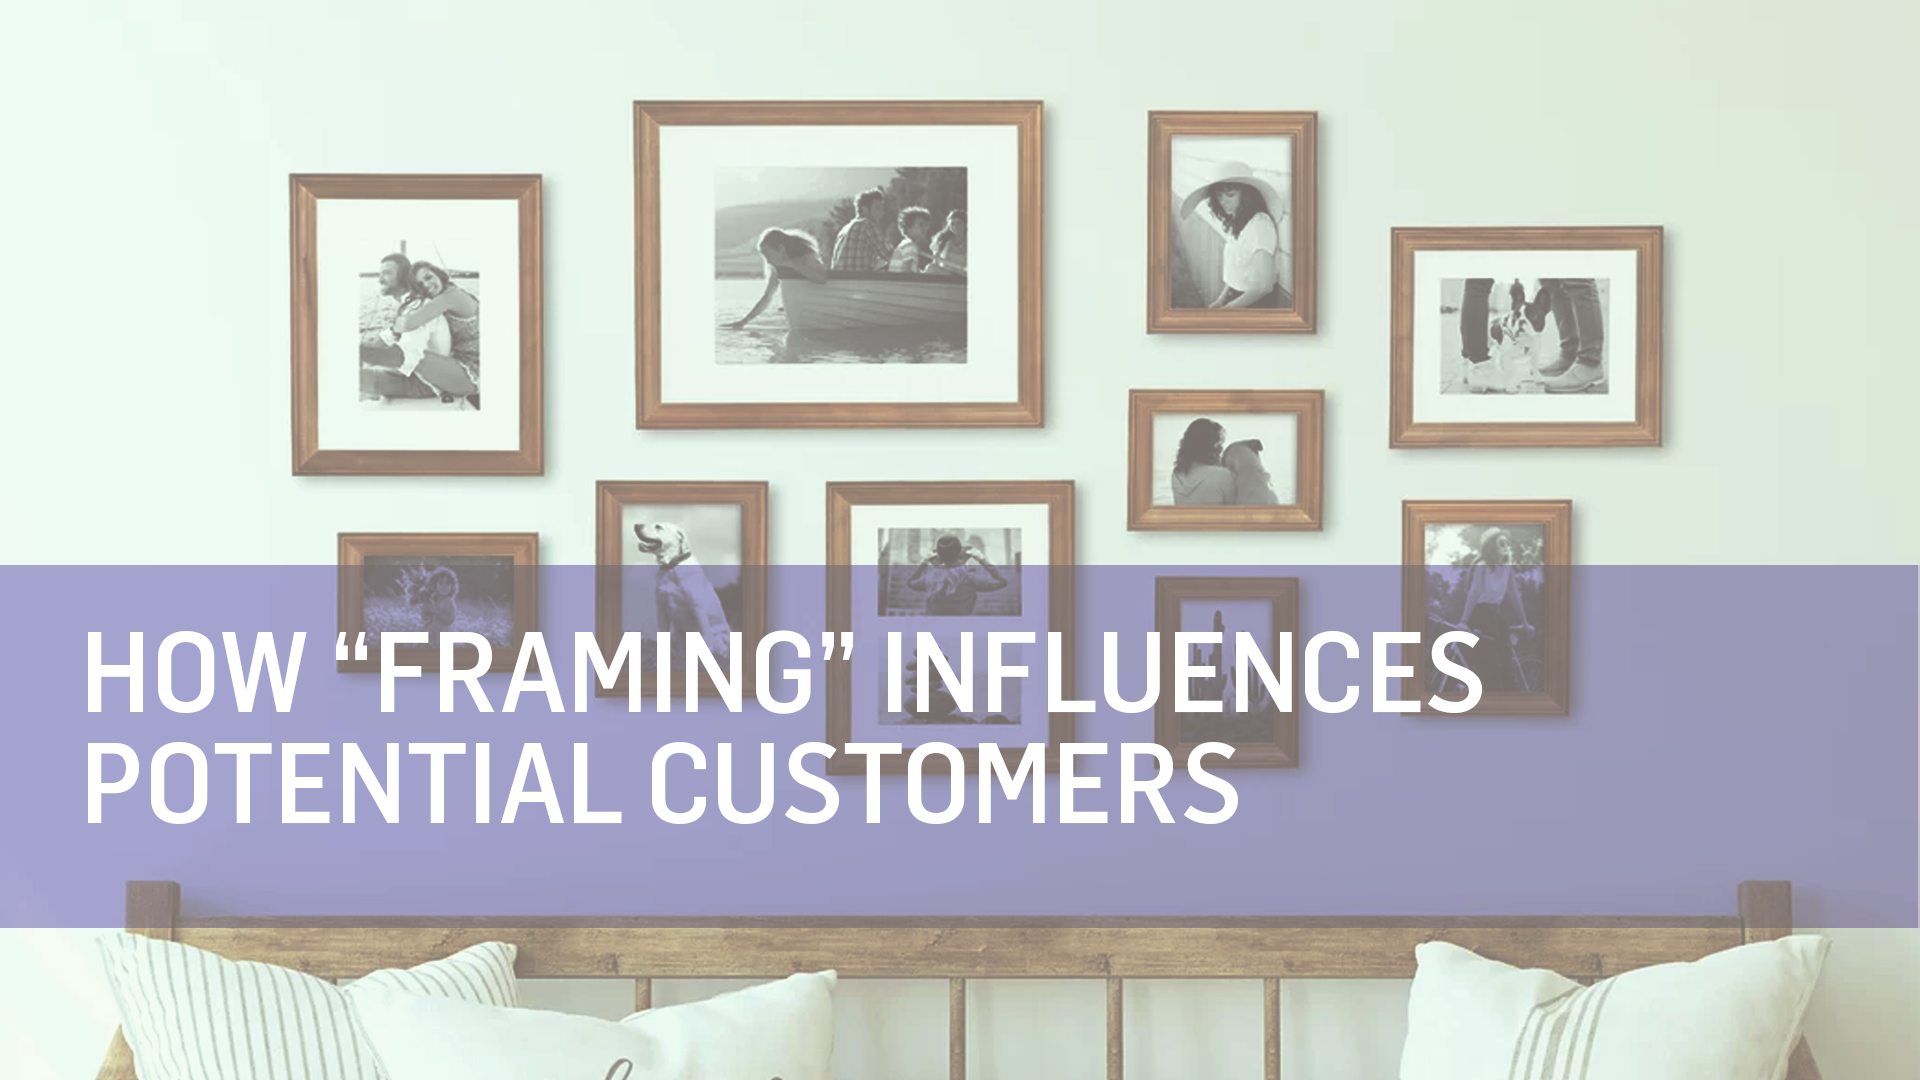 5 Ways to Use Framing in Your Content Marketing